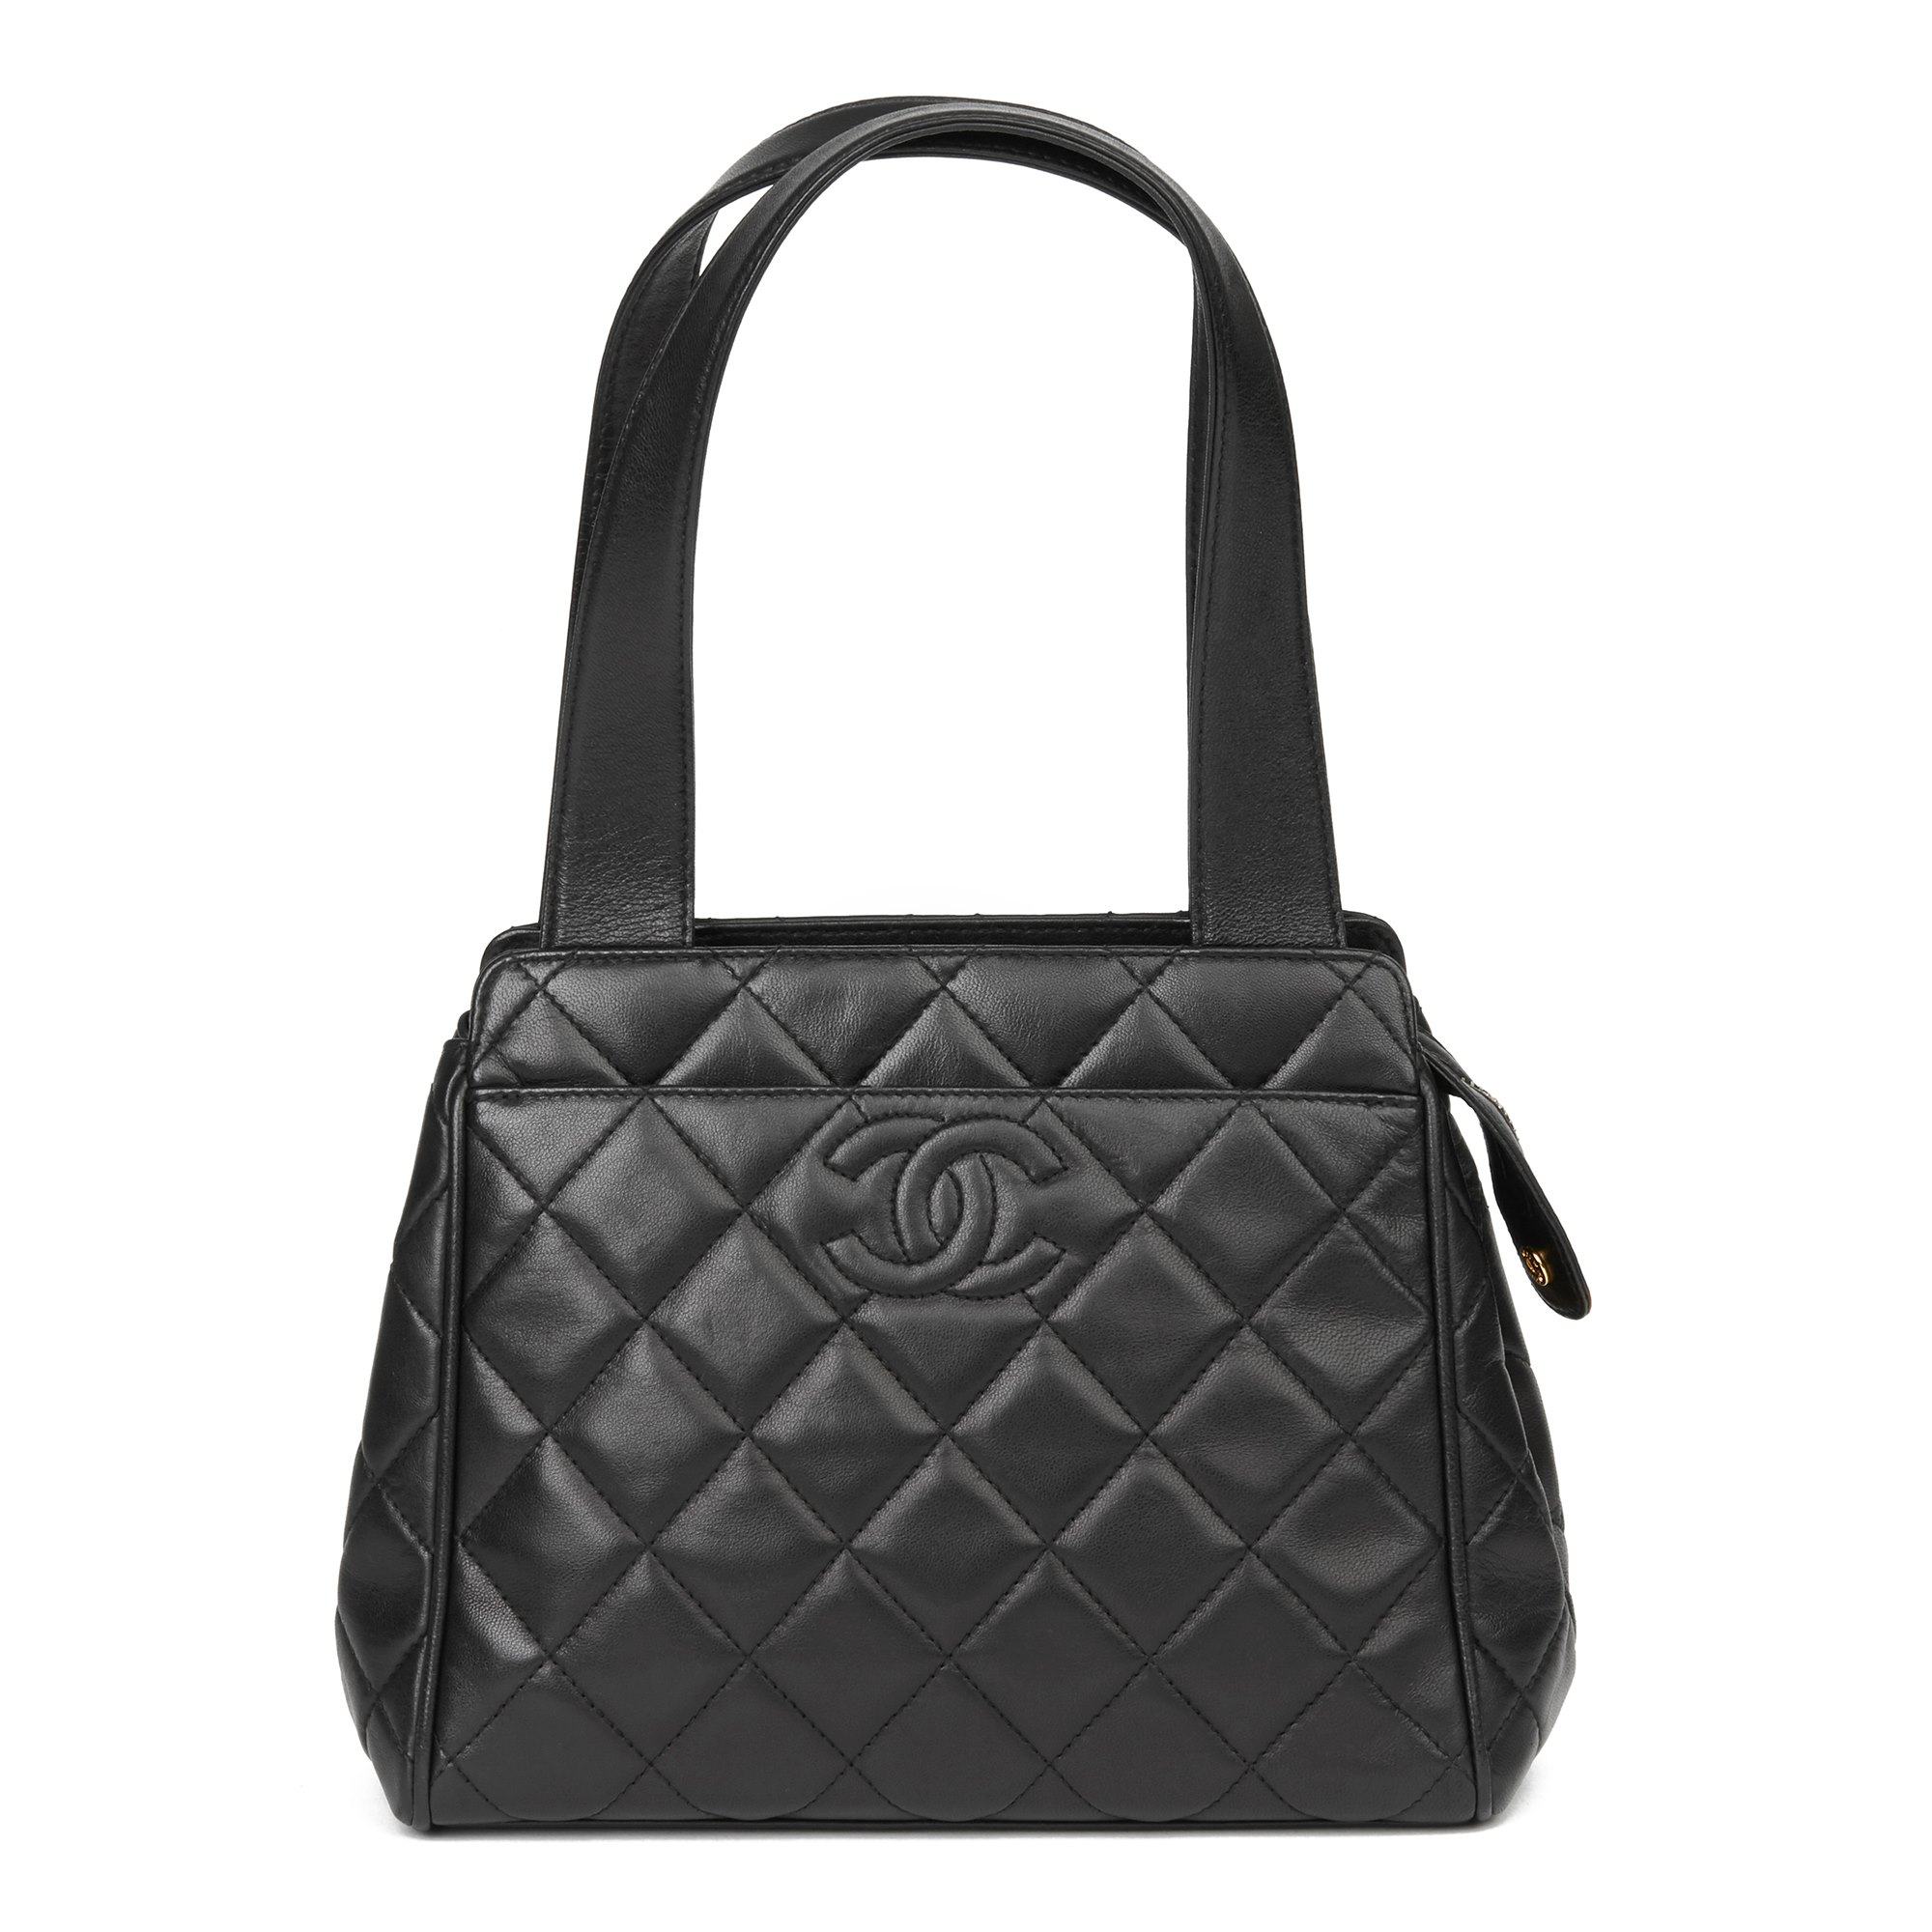 Chanel Black Quilted Lambskin Vintage Timeless Tote